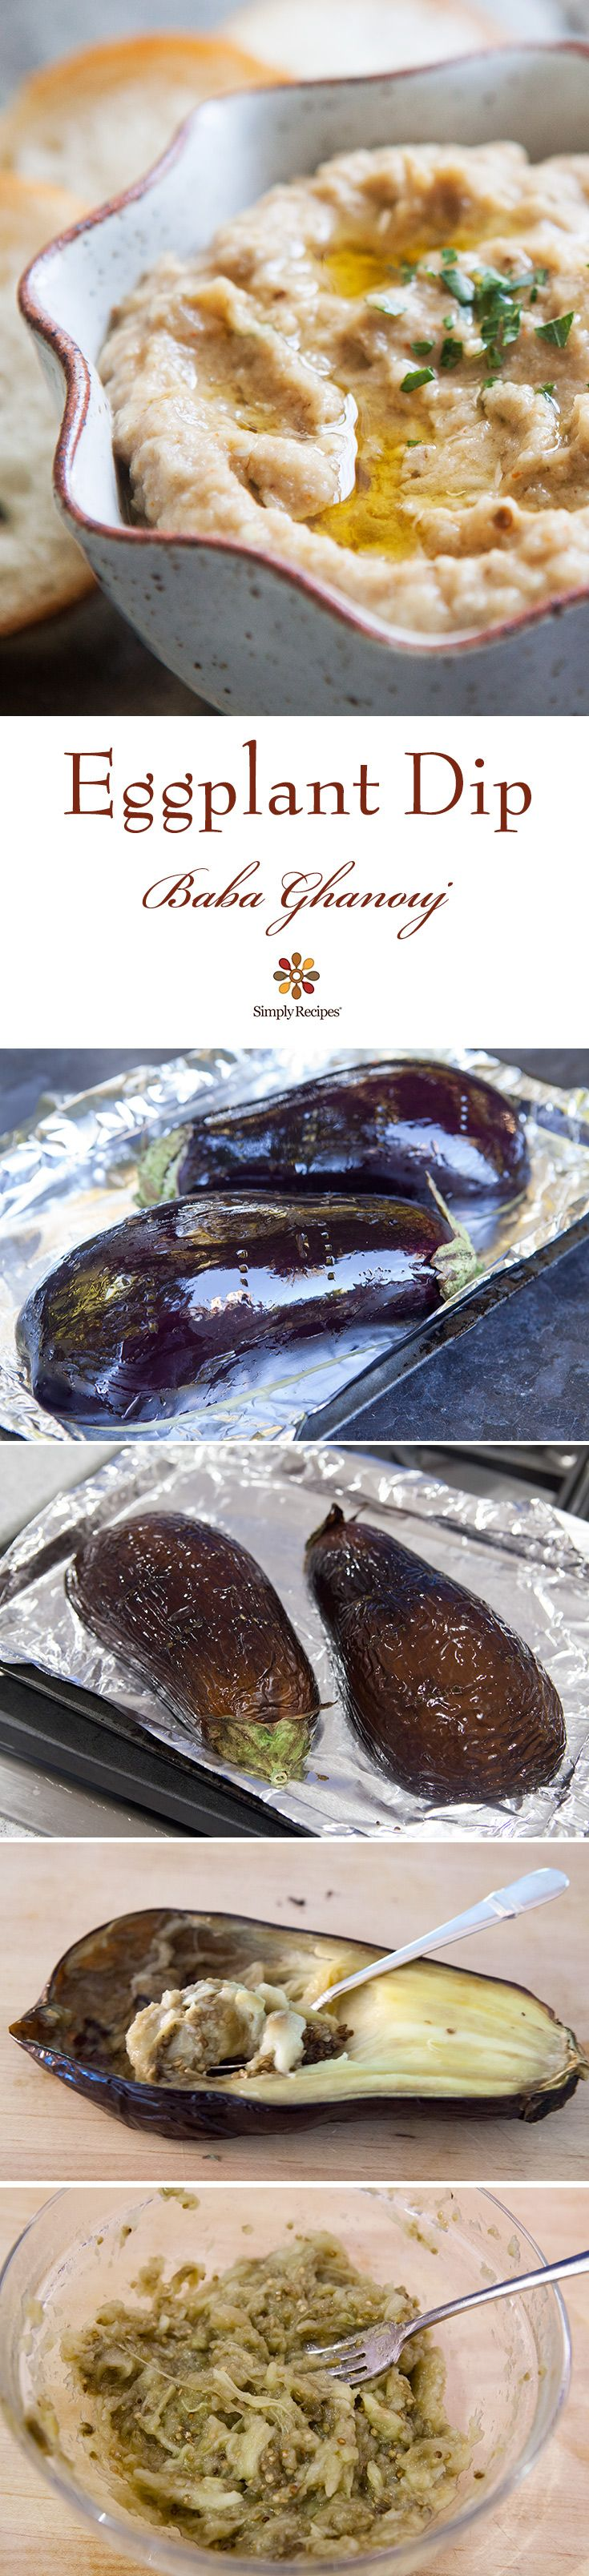 55 best srilankan dessert images on pinterest cooking food indian baked eggplant pureed with tahini garlic and olive oil forumfinder Choice Image